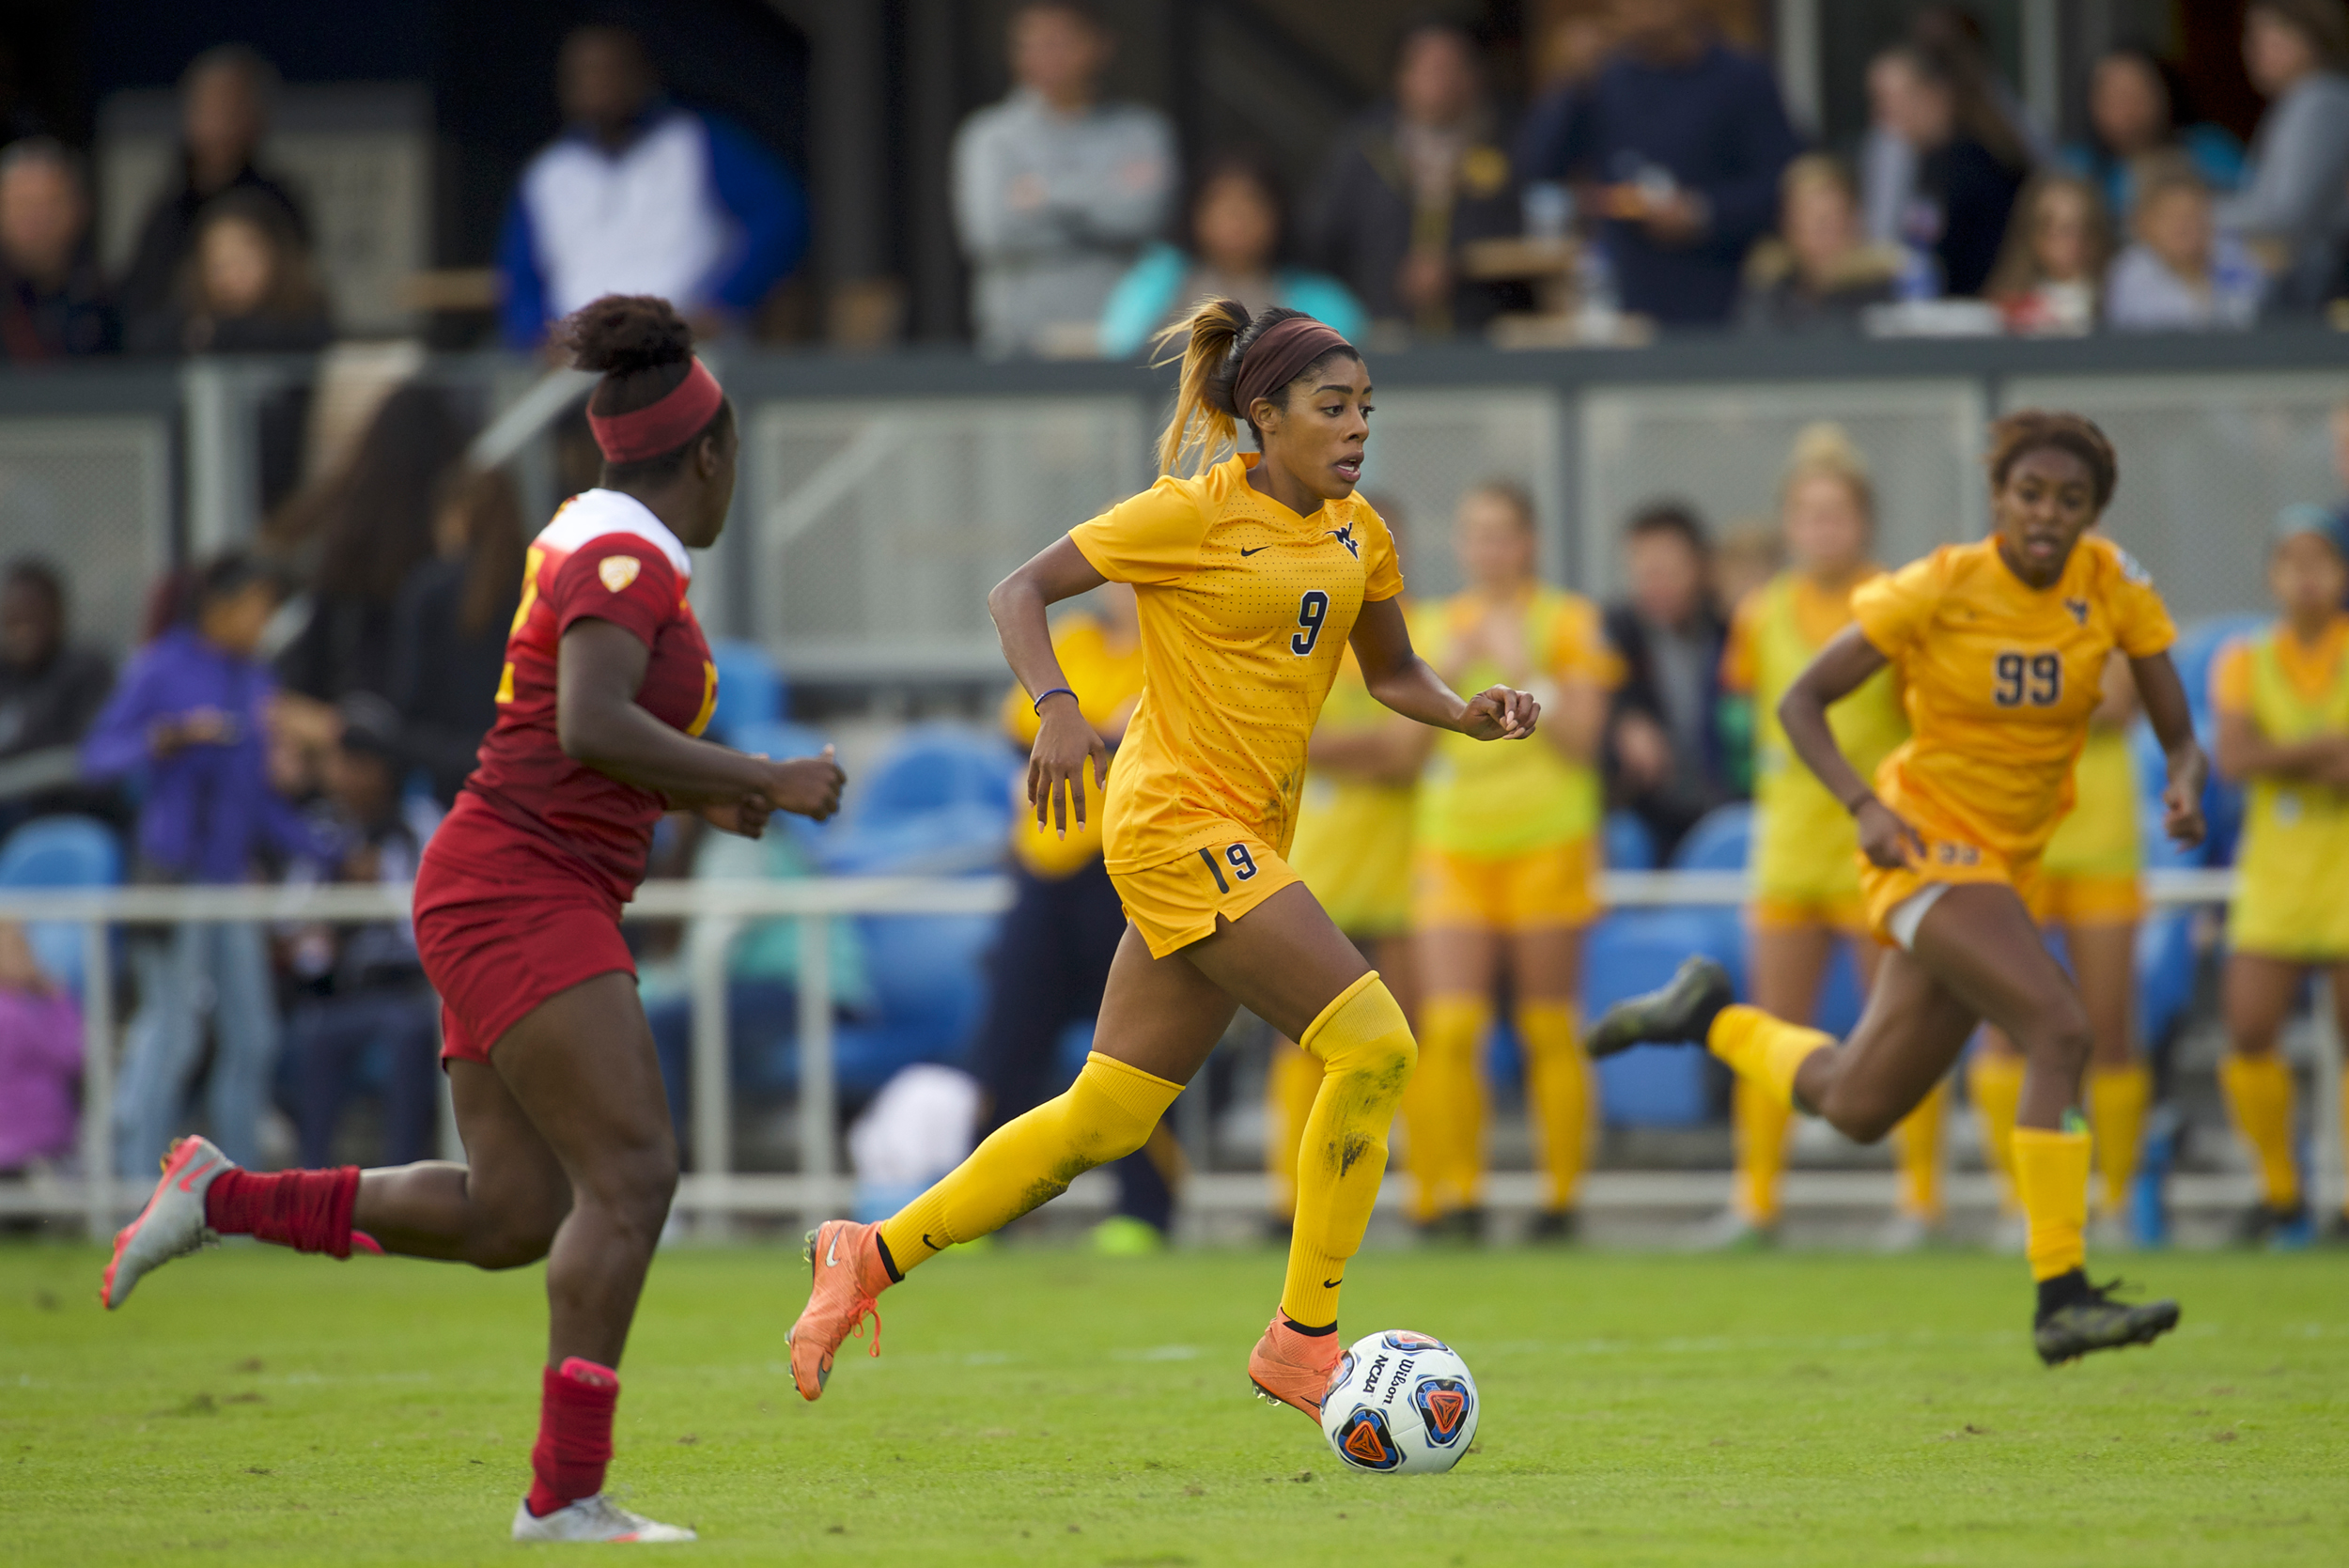 Ashley Lawrence (9) of West Virginia University pushes the ball downfield against the University of Southern California during the Division I Women's Soccer Championship held at Avaya Stadium on December 04, 2016 in San Jose, California.